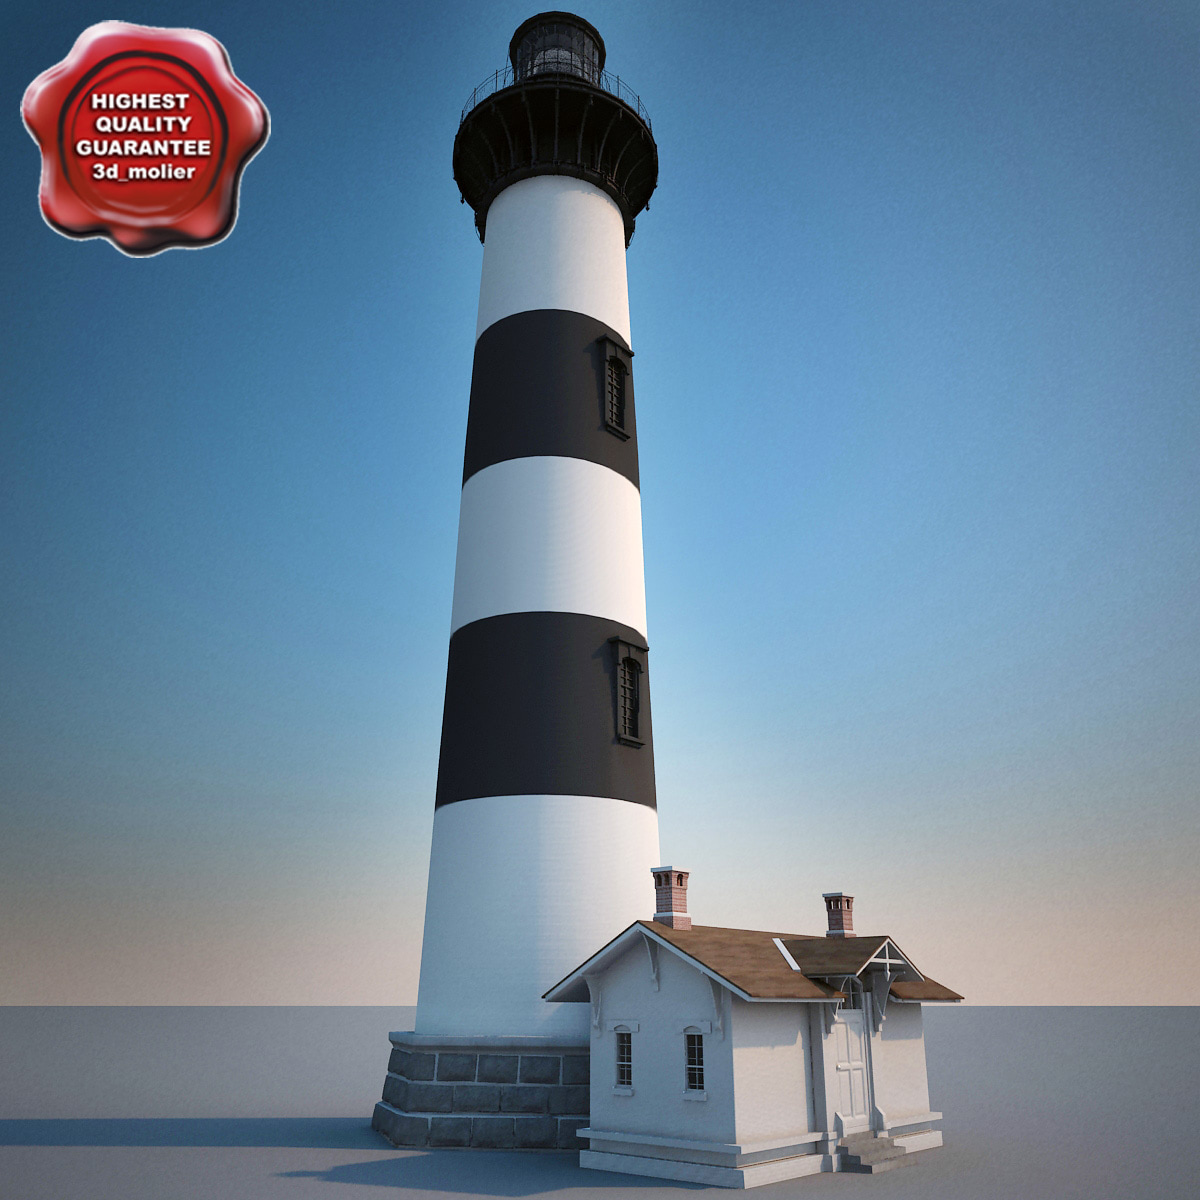 Lighthouse_V3_00.jpg